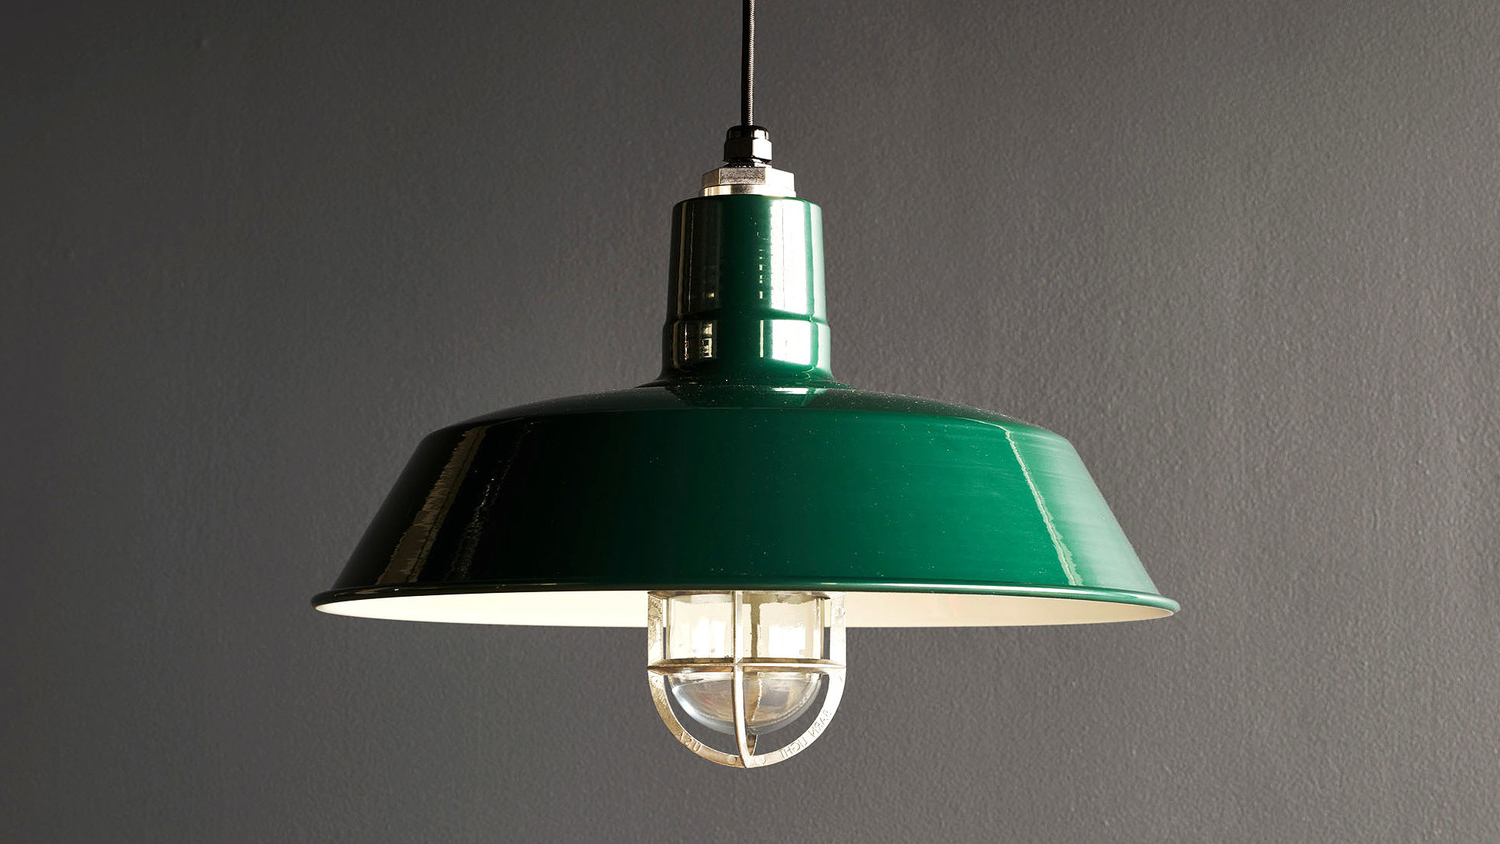 Great Fall Sales On Nisbet 4 Light Lantern Geometric Pendant Intended For Most Up To Date Nisbet 4 Light Lantern Geometric Pendants (View 12 of 25)